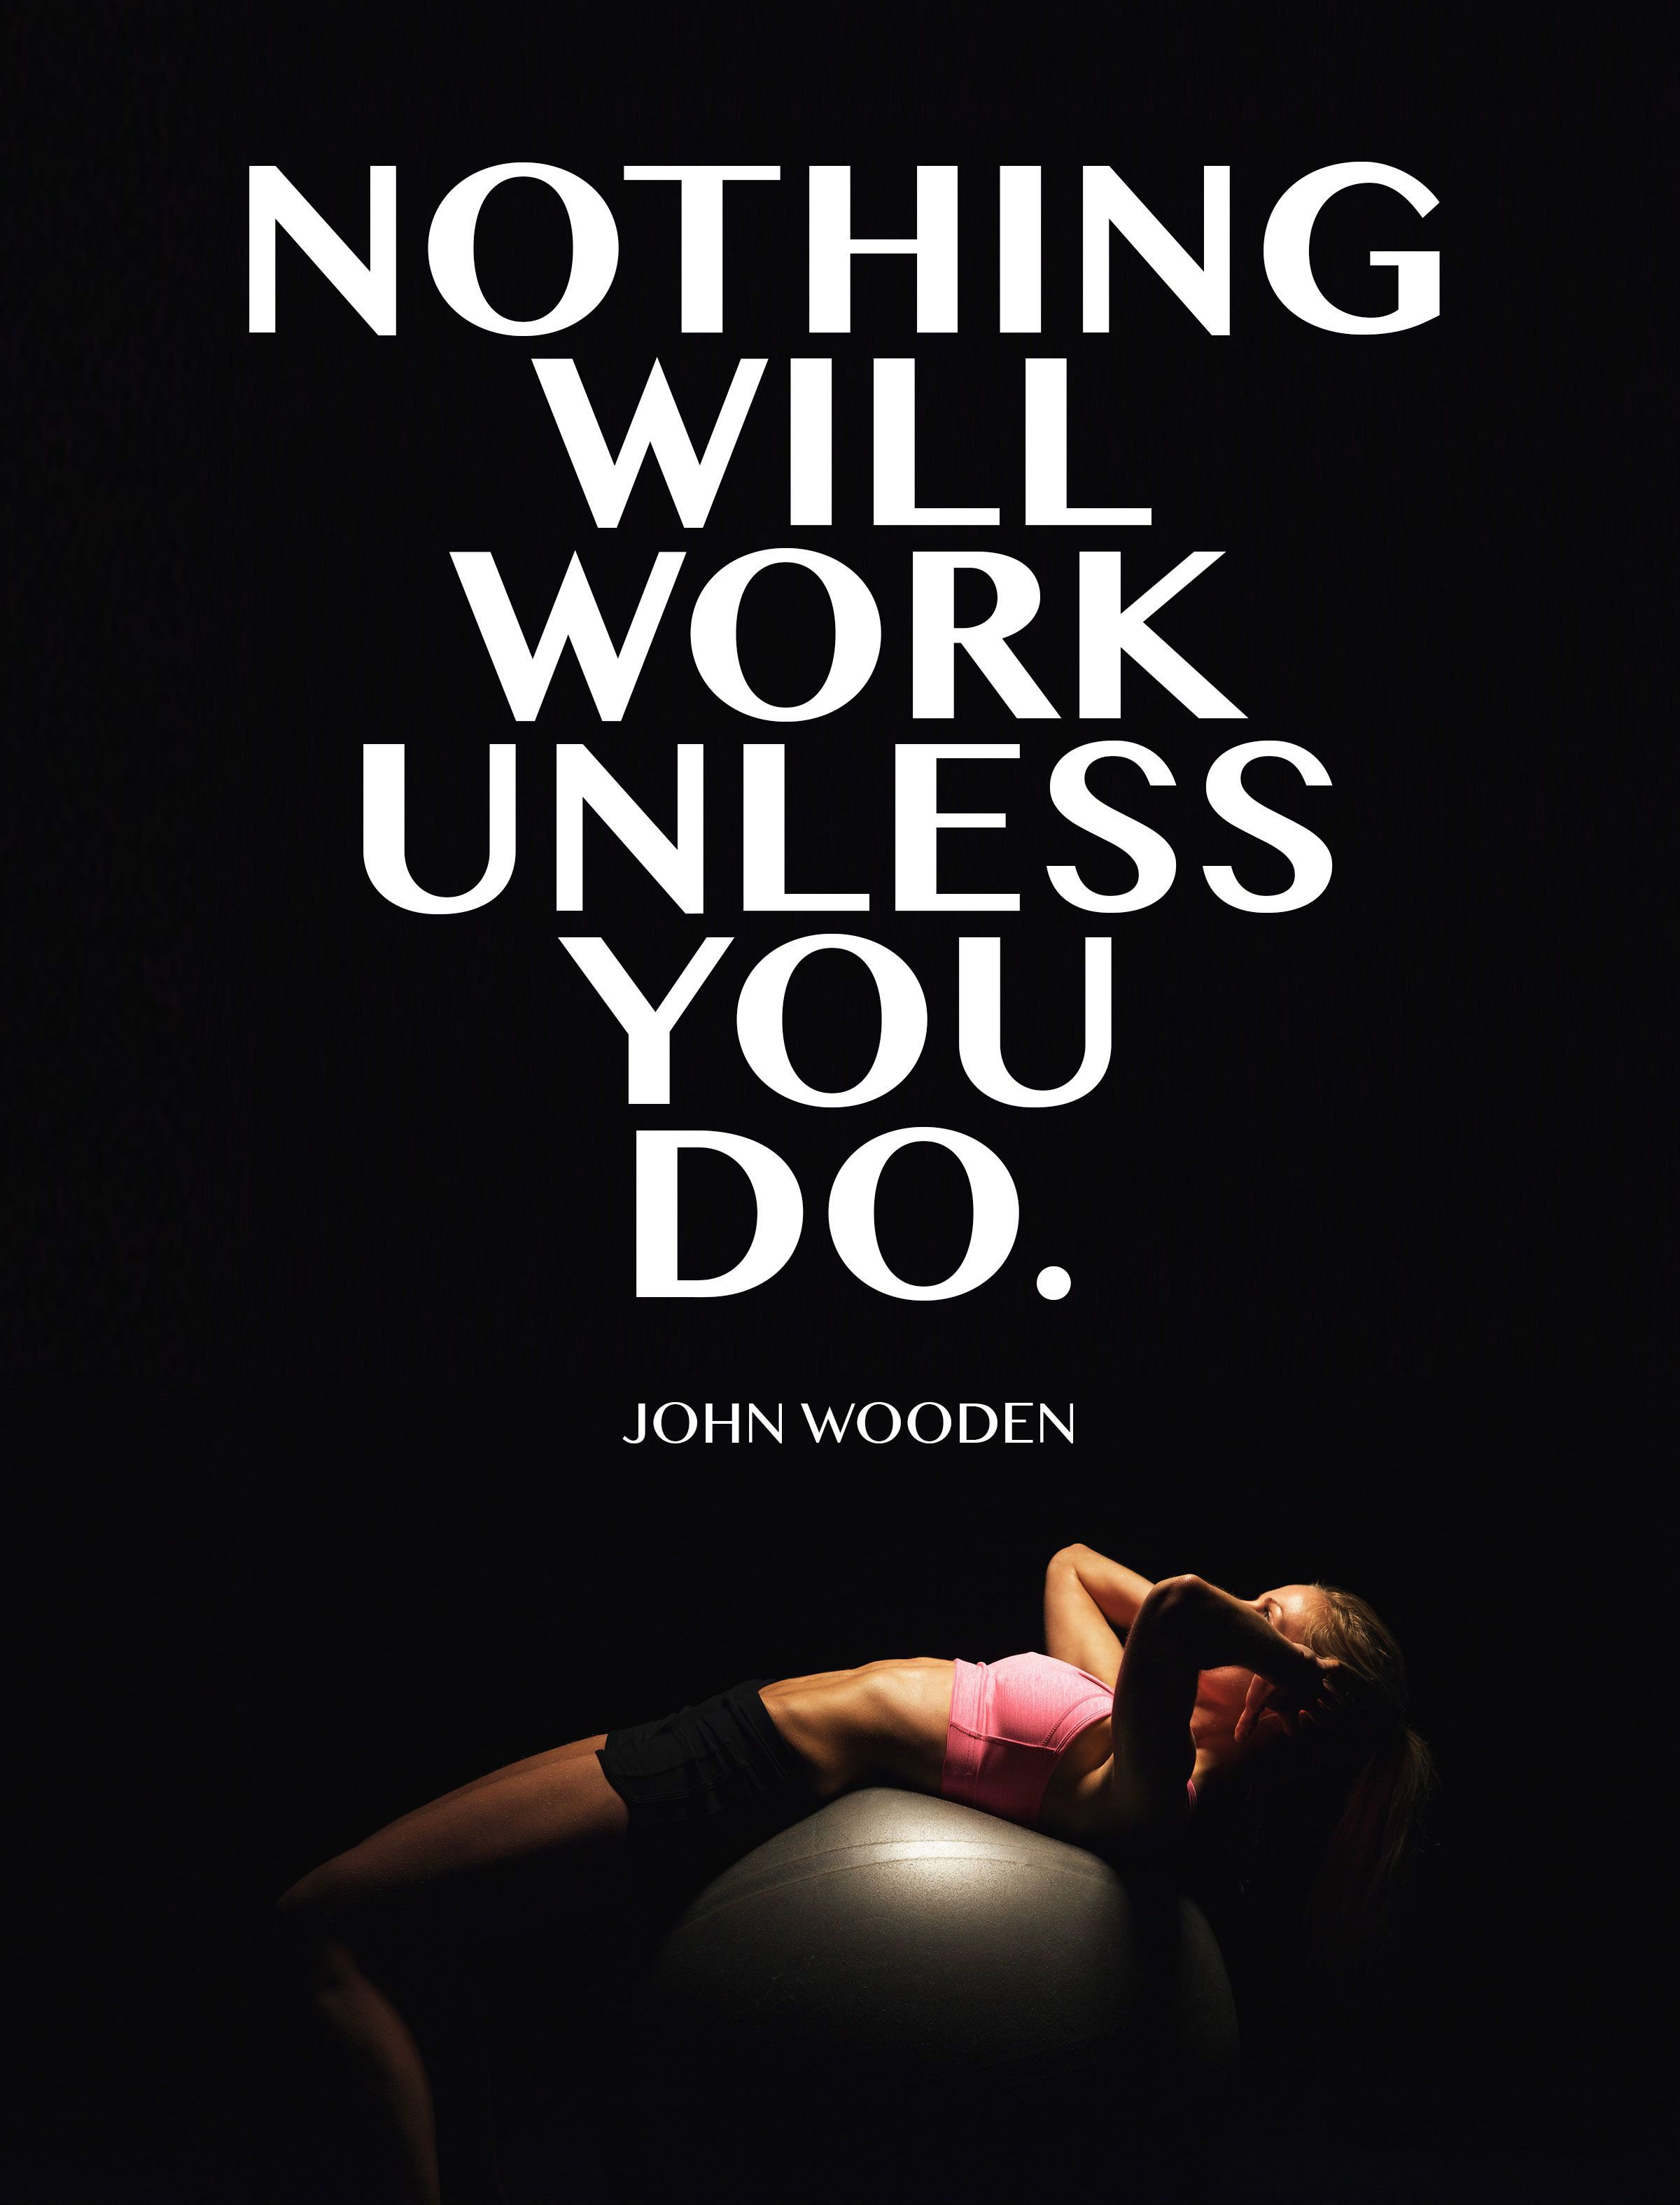 Nothing will work unless you do. John Wooden quote